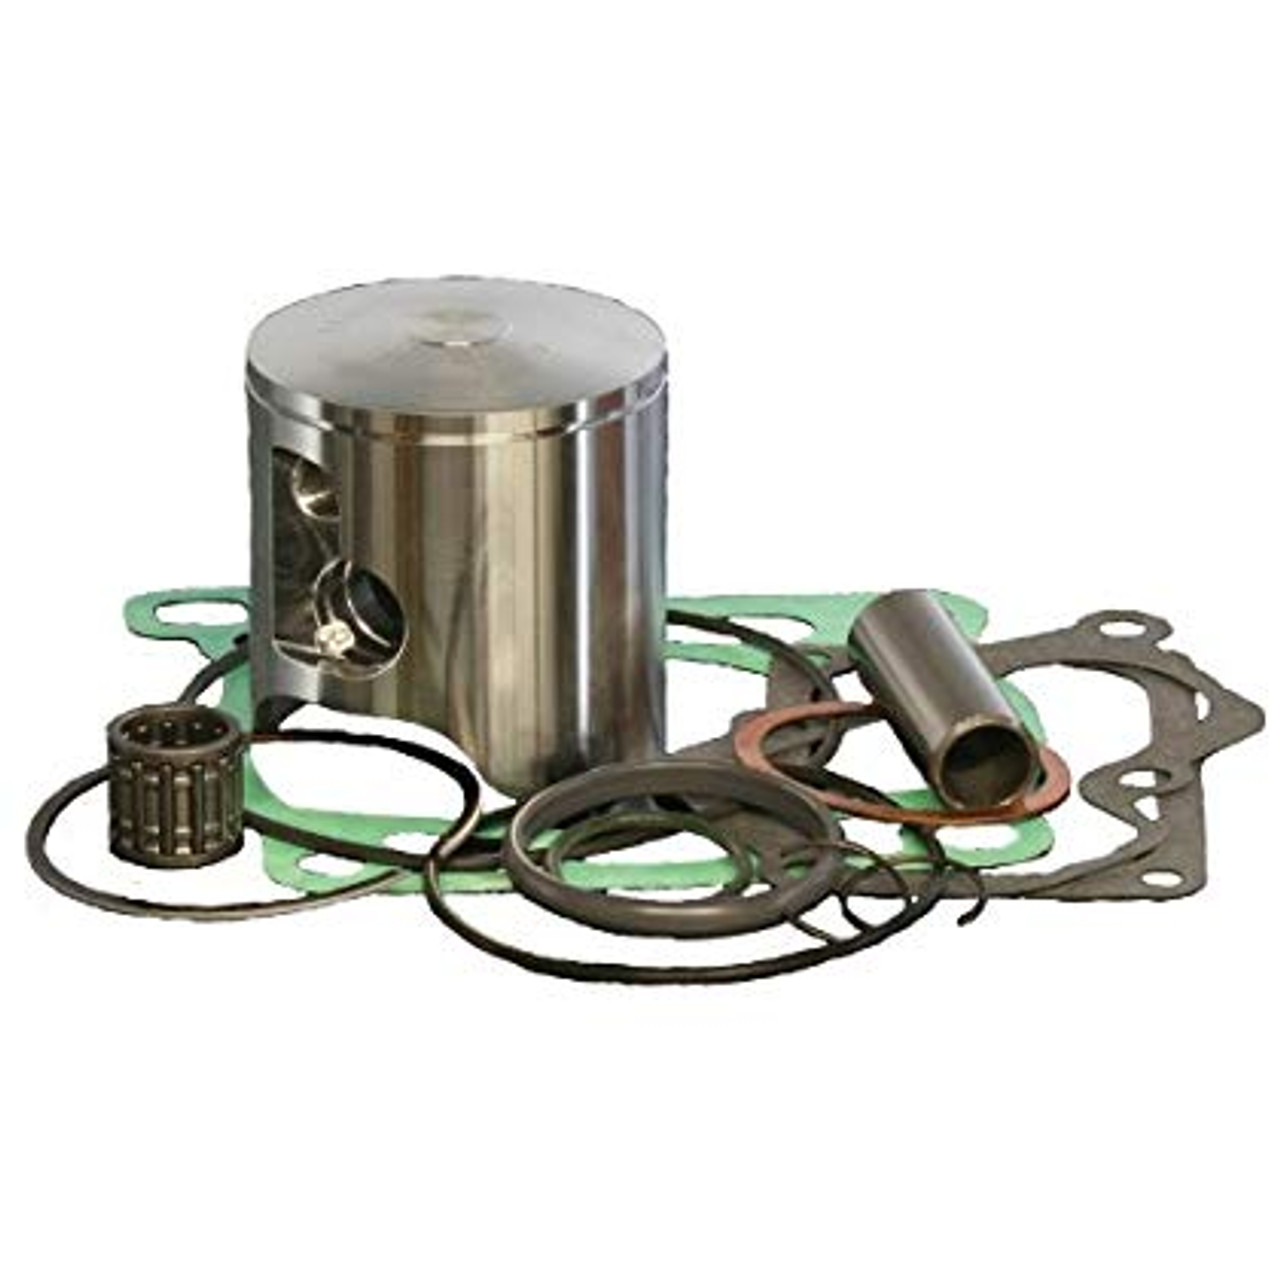 Wiseco PK1031 85.00 mm 10.0:1 Compression ATV Piston Kit with Top-End Gasket Kit